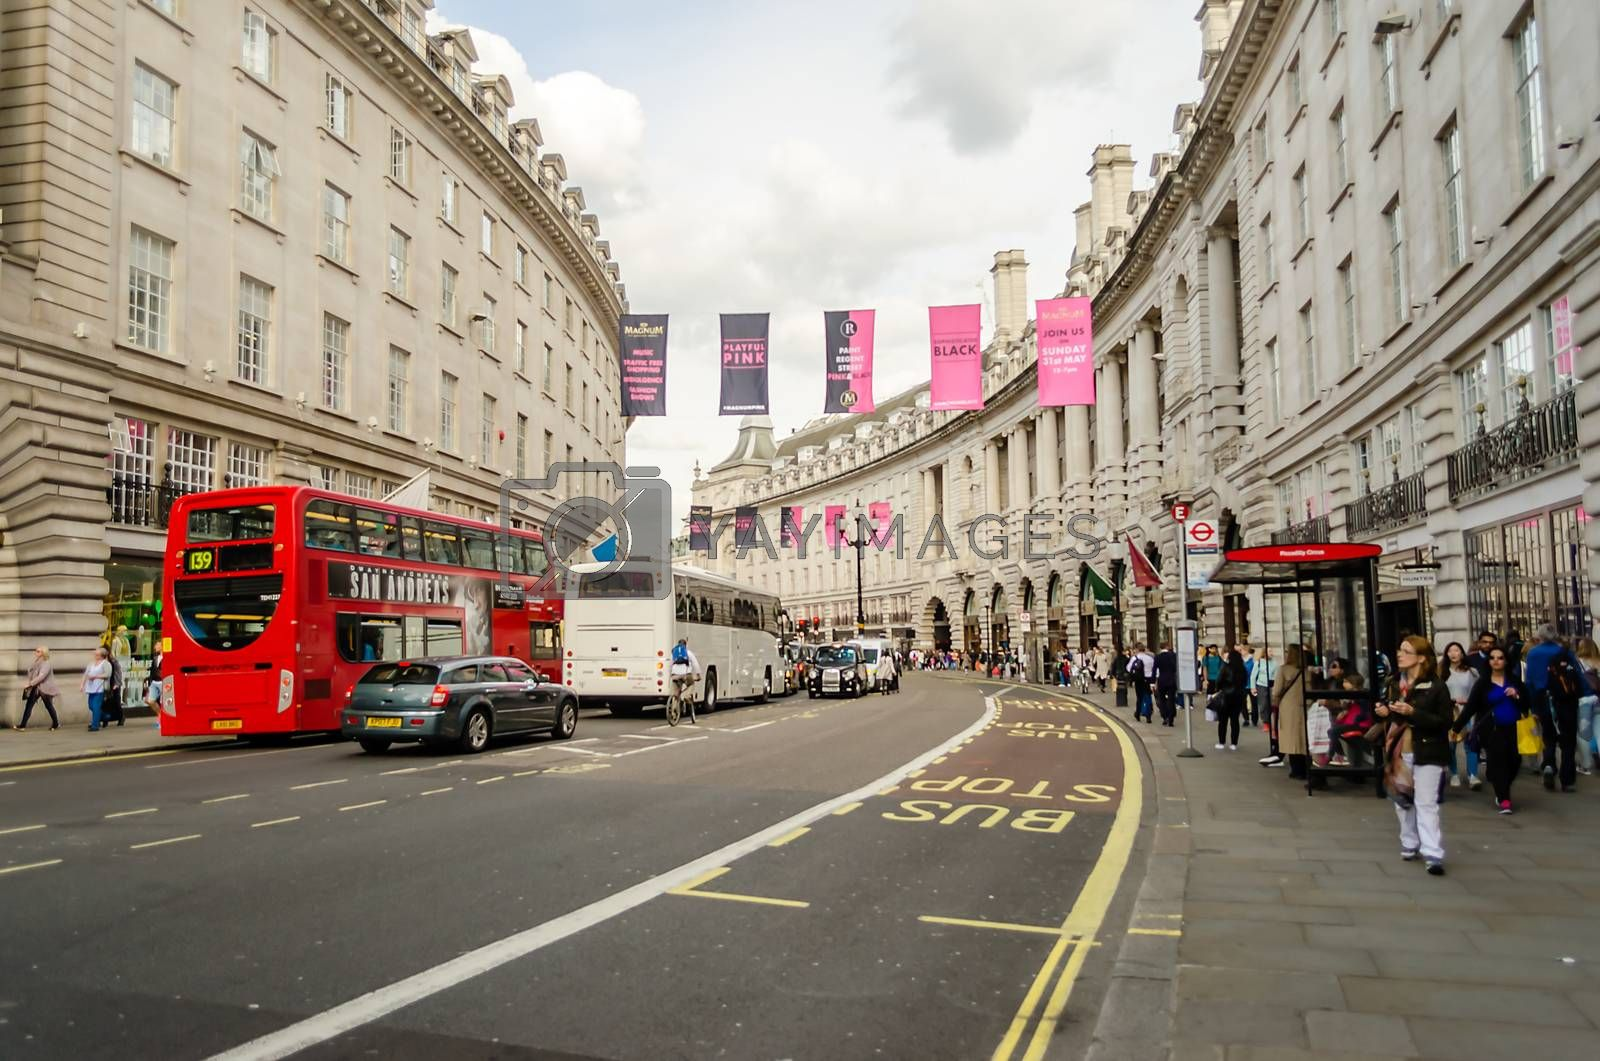 LONDON - MAY 28: Regent's street on May 28, 2015, in London, UK. It was named after Prince Regent, completed in 1825. It is one of the main shopping streets in London.